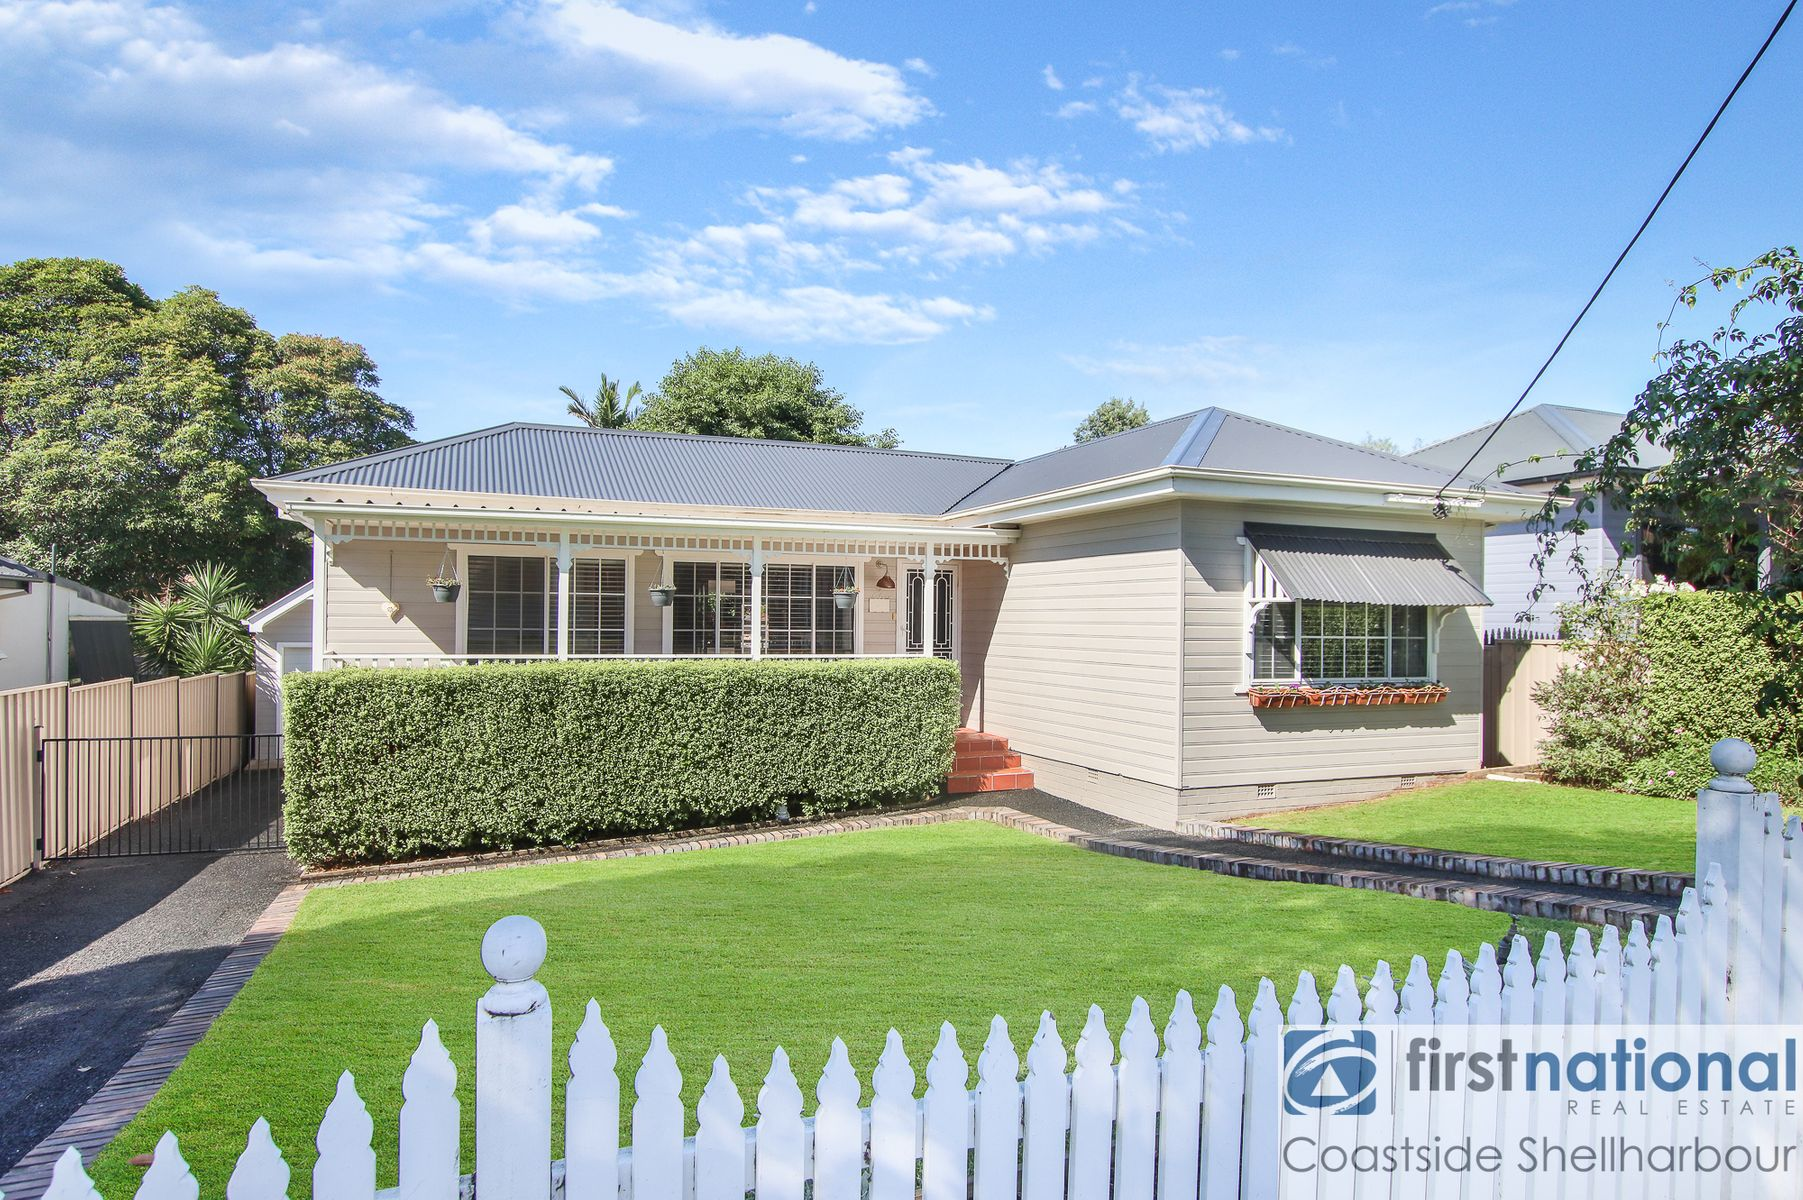 31 Strata Avenue, Barrack Heights, NSW 2528